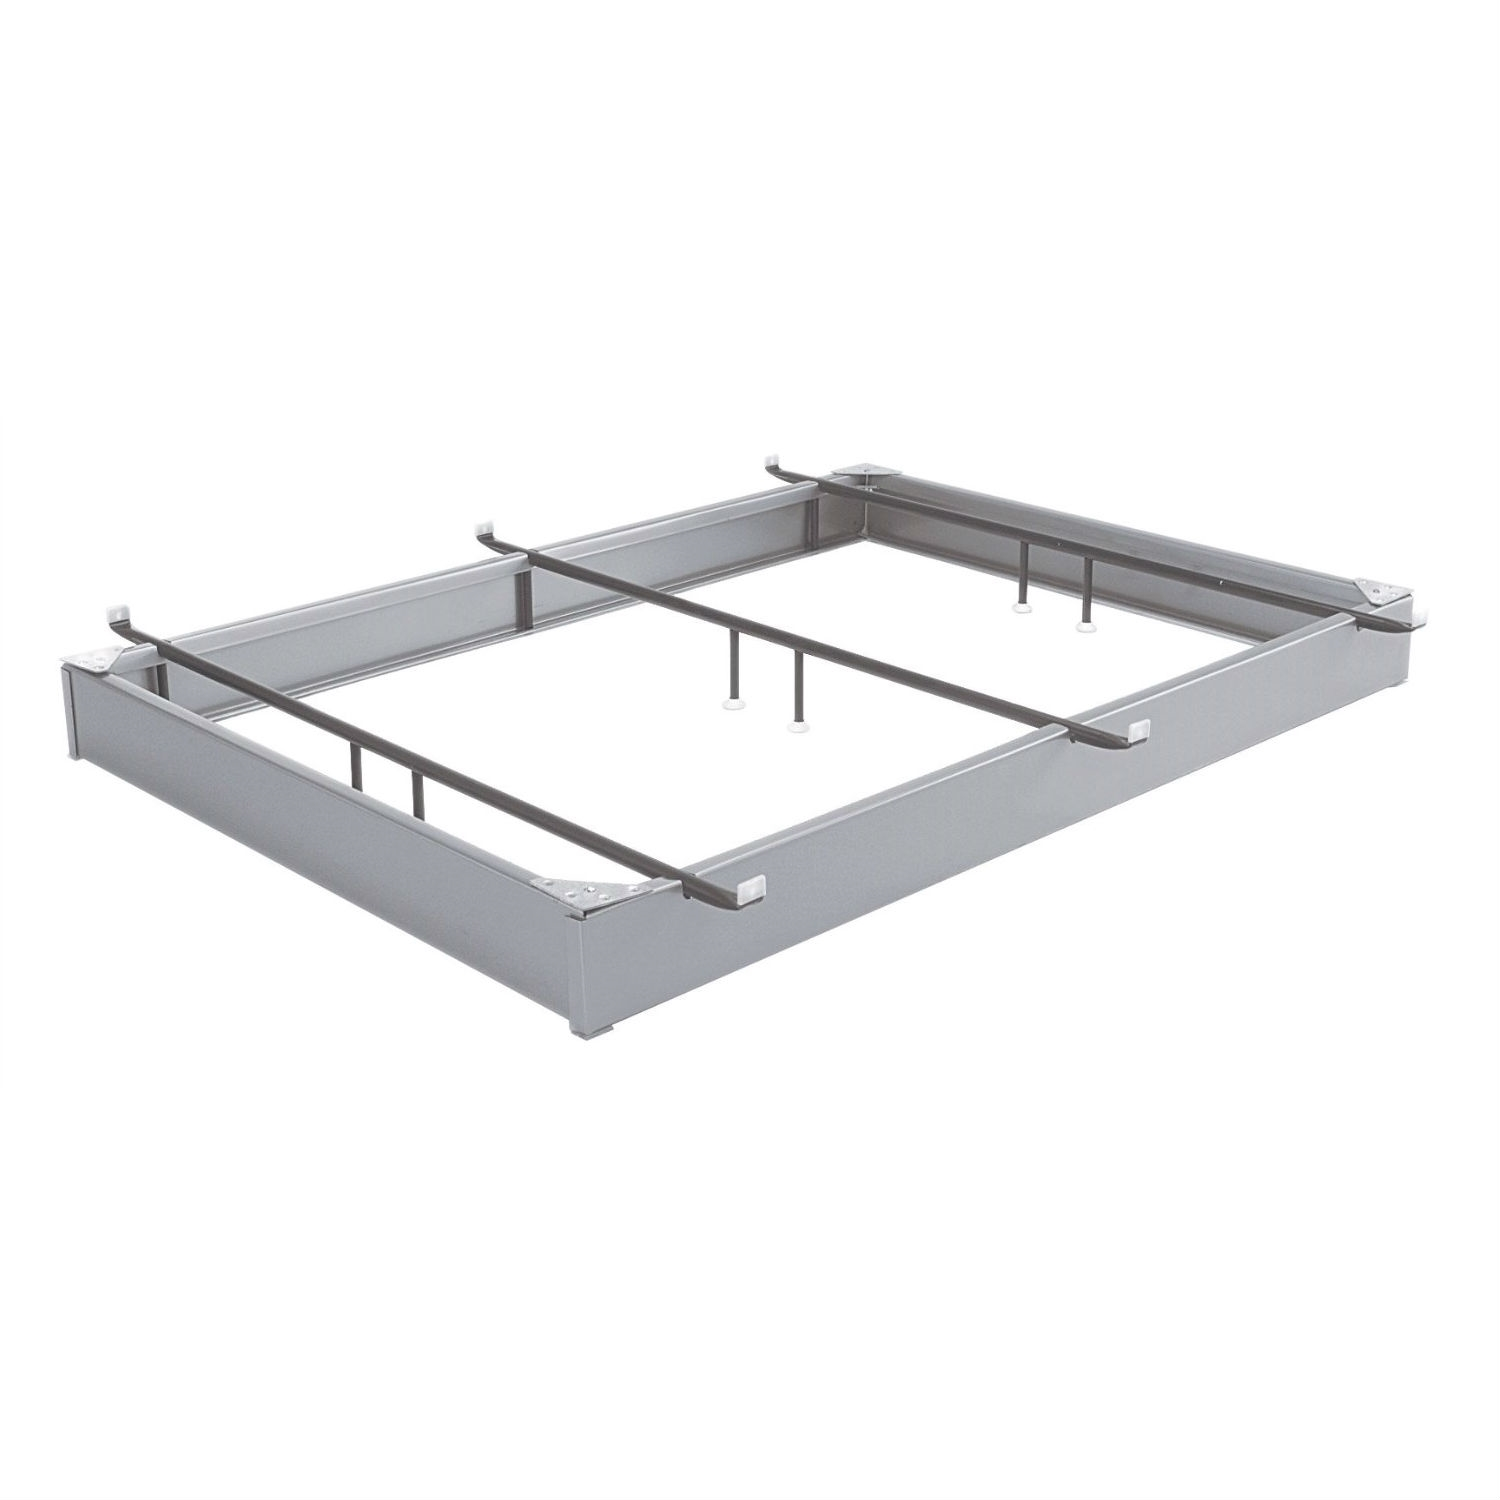 Full size Hotel Style Metal Bed Base Hospitality Bed Frame ...